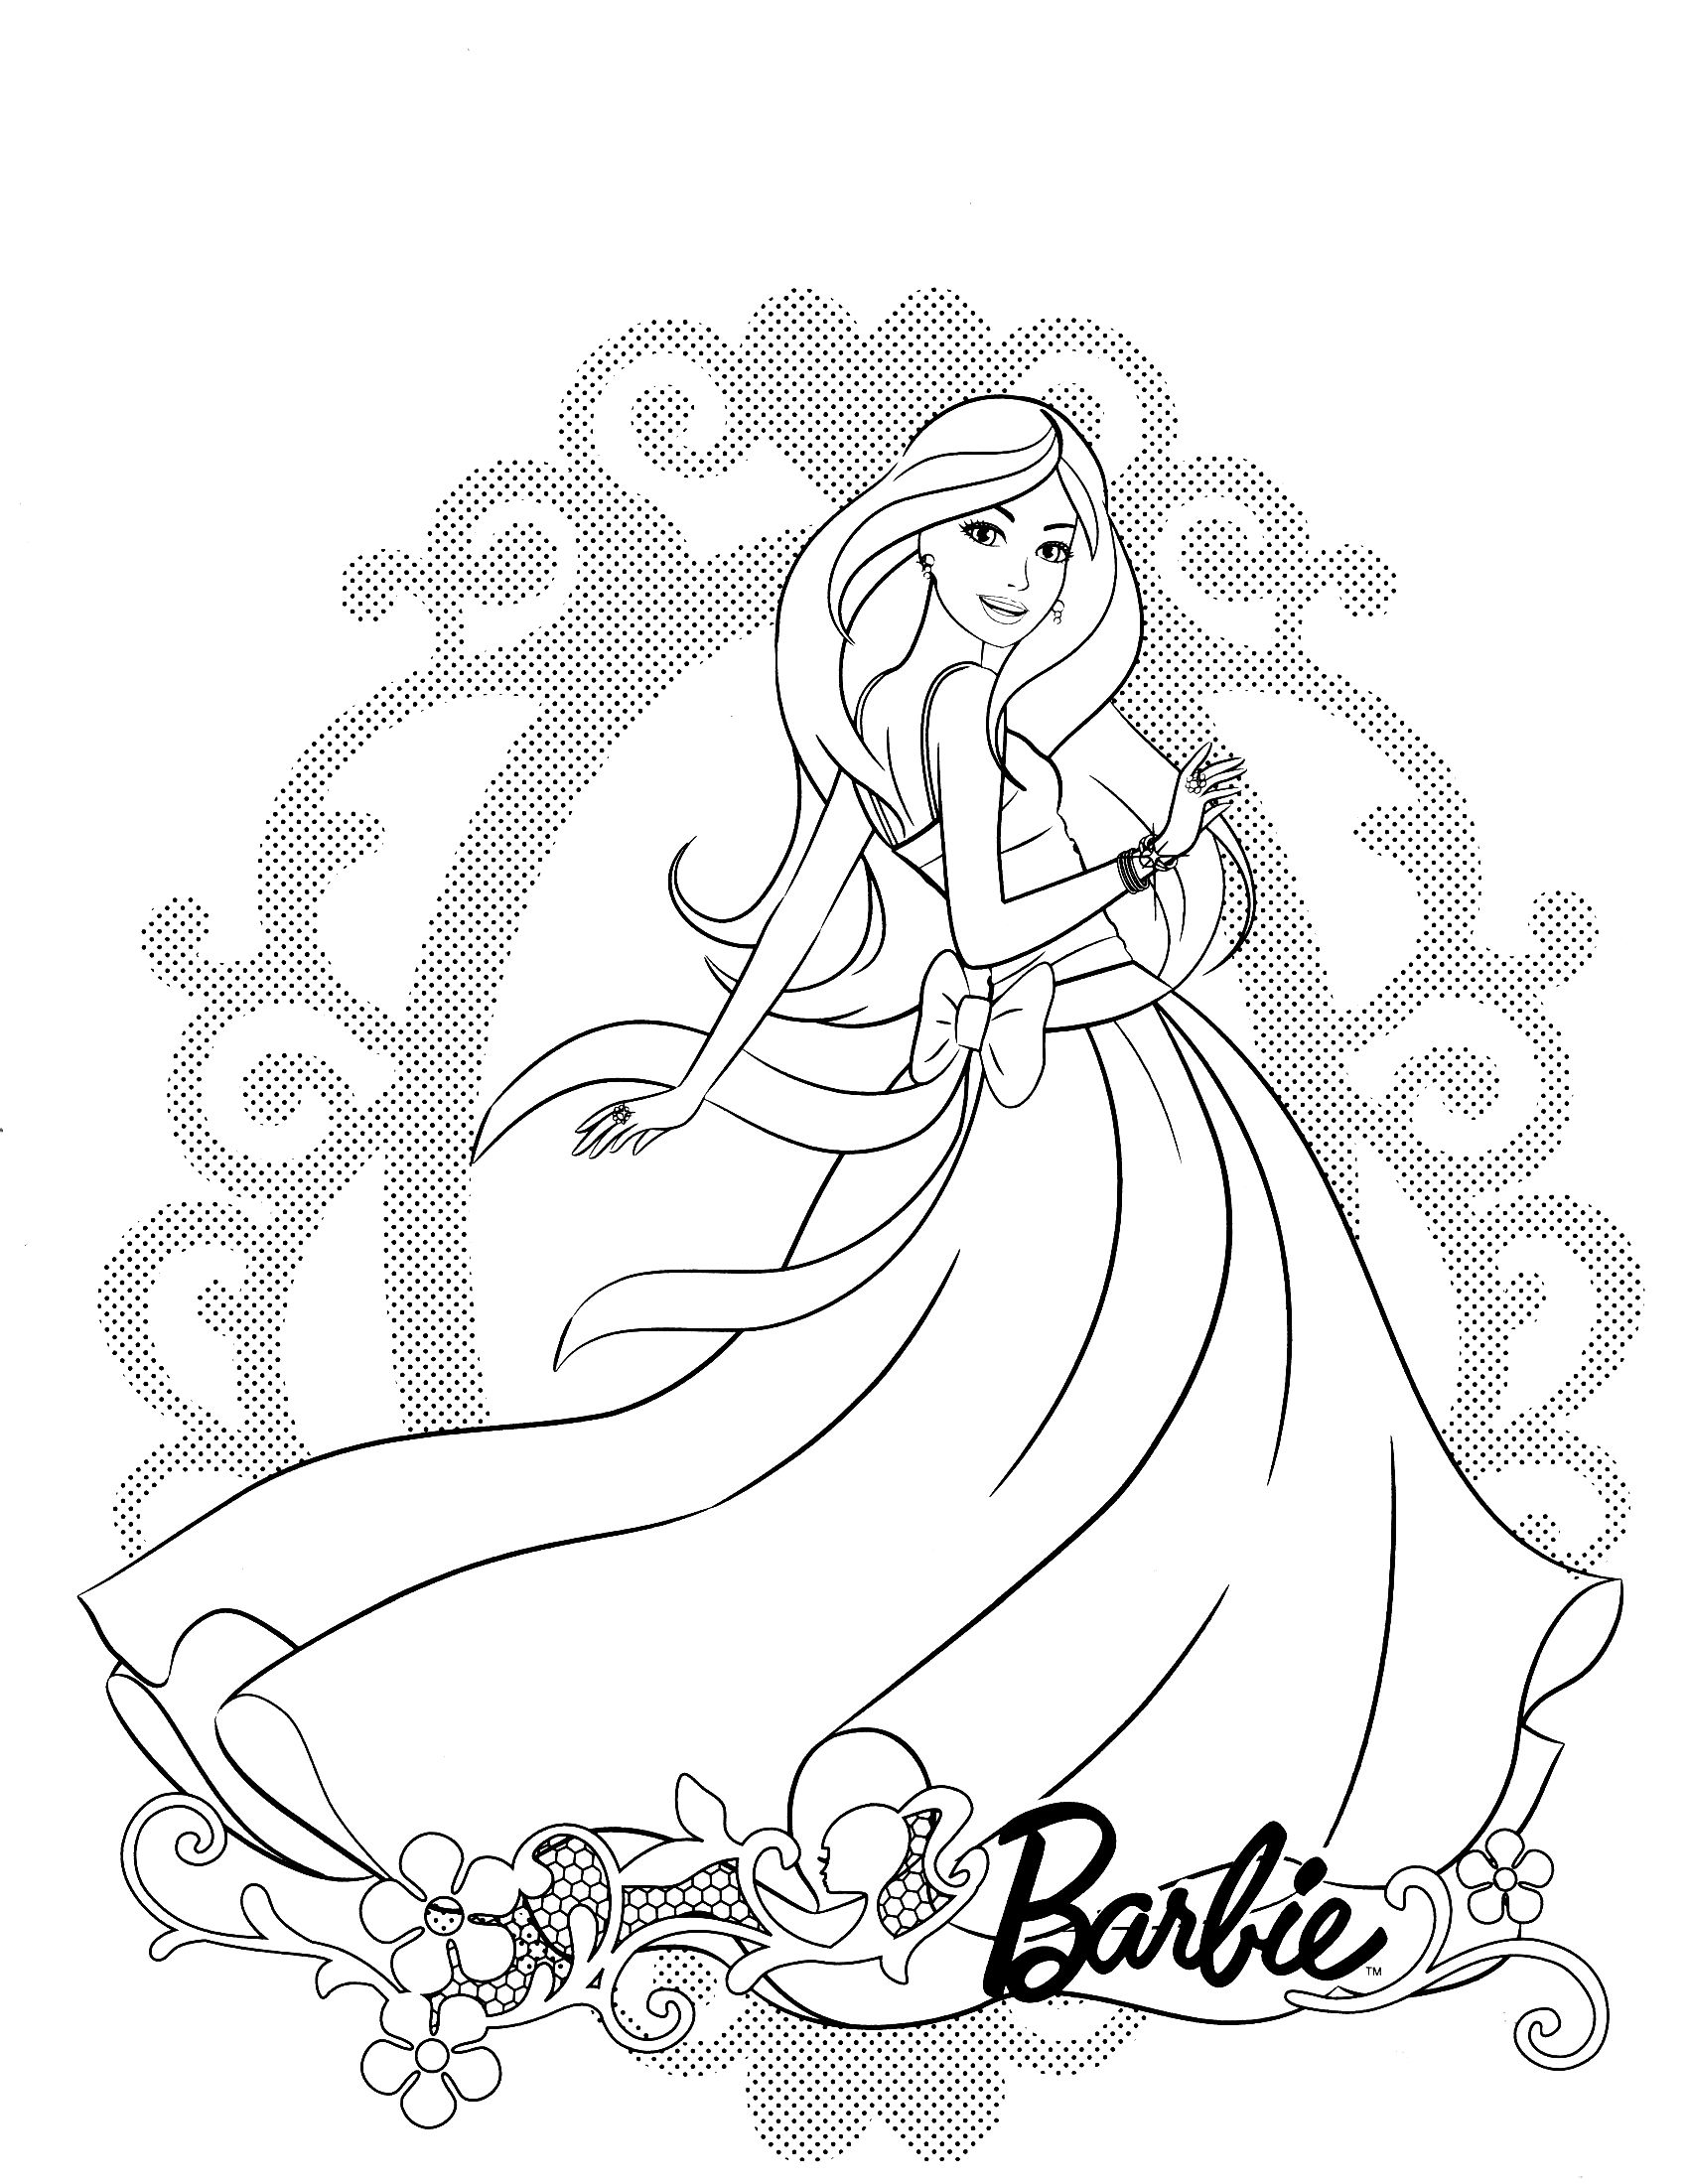 Coloring Pictures Of Barbie Princess In 2020 Cartoon Coloring Pages Barbie Coloring Princess Coloring Pages